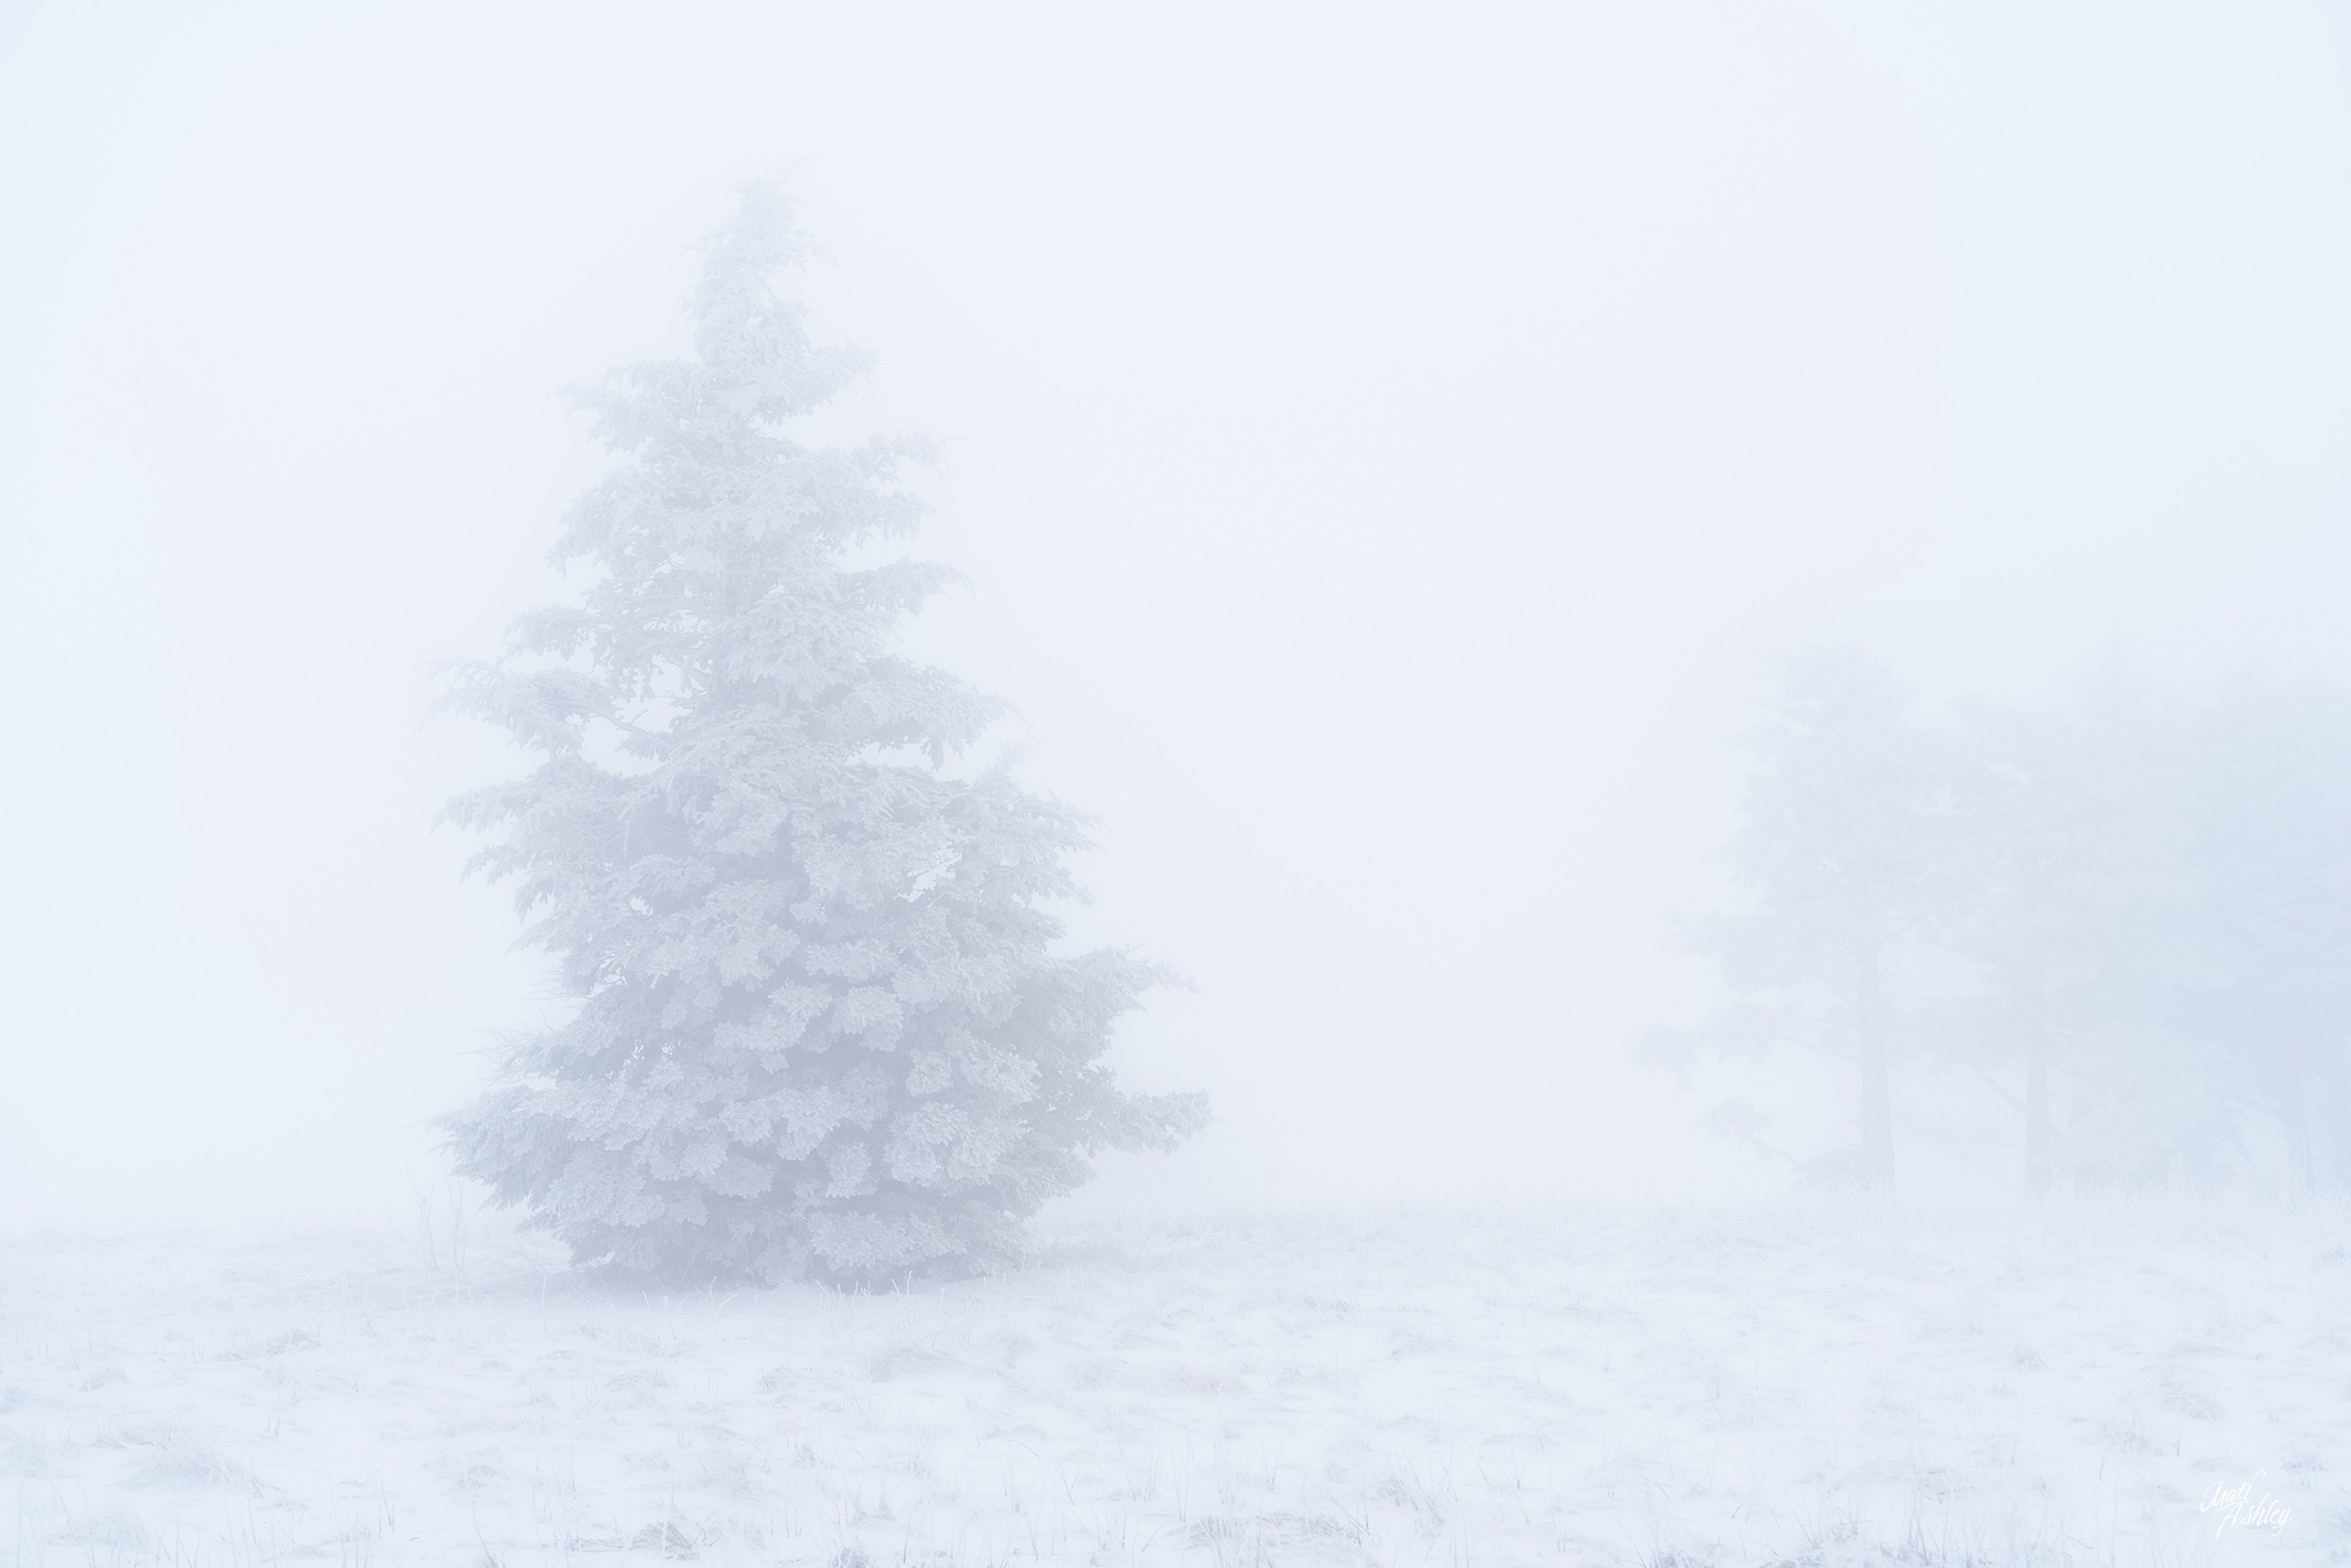 Snow covered pine tree in foggy, whiteout conditions.